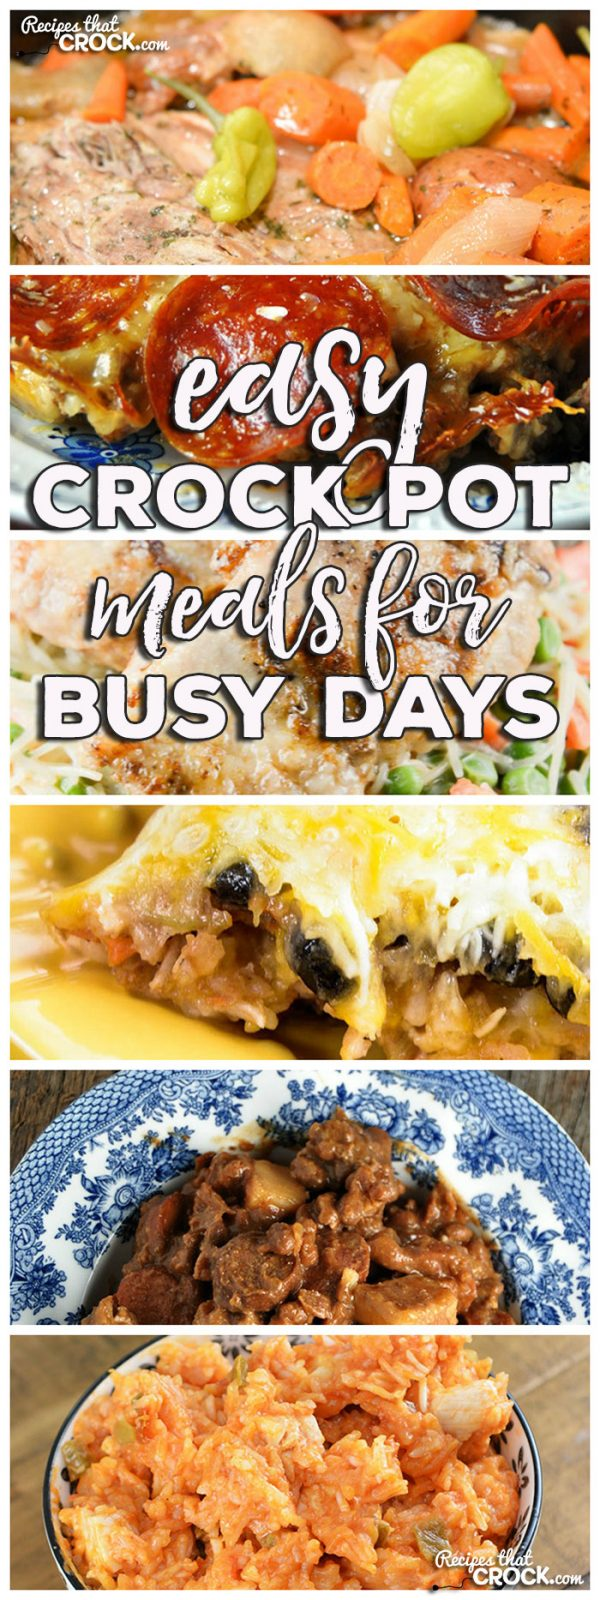 This week for our Friday Favorites we have some yummy Easy Crock Pot Meals for Busy Days like Crock Pot Crustless Pizza, Slow Cooker Mississippi Pork Roast with Vegetables, Crock Pot Nacho Chicken and Rice, Crock Pot Mexican Rice Veggie Bake, Easy Chicken Crock Pot Dinner for Two and Crock Pot Chuck Wagon Stew.